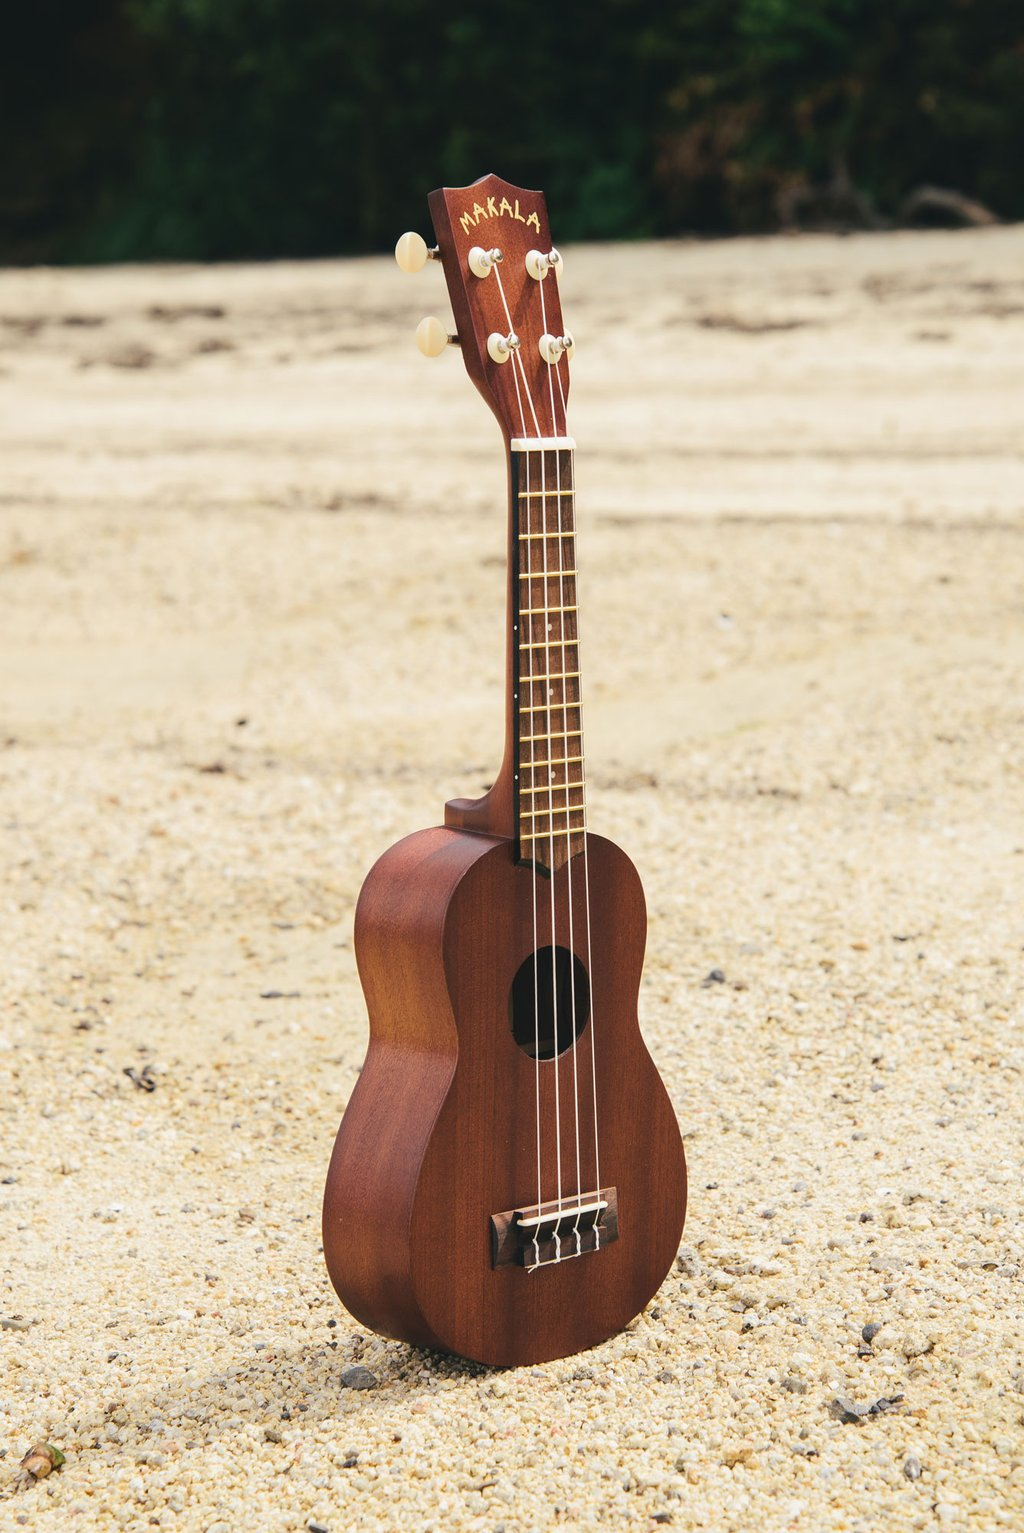 Cool gifts for tween girls: Kala brand Makala classic ukelele